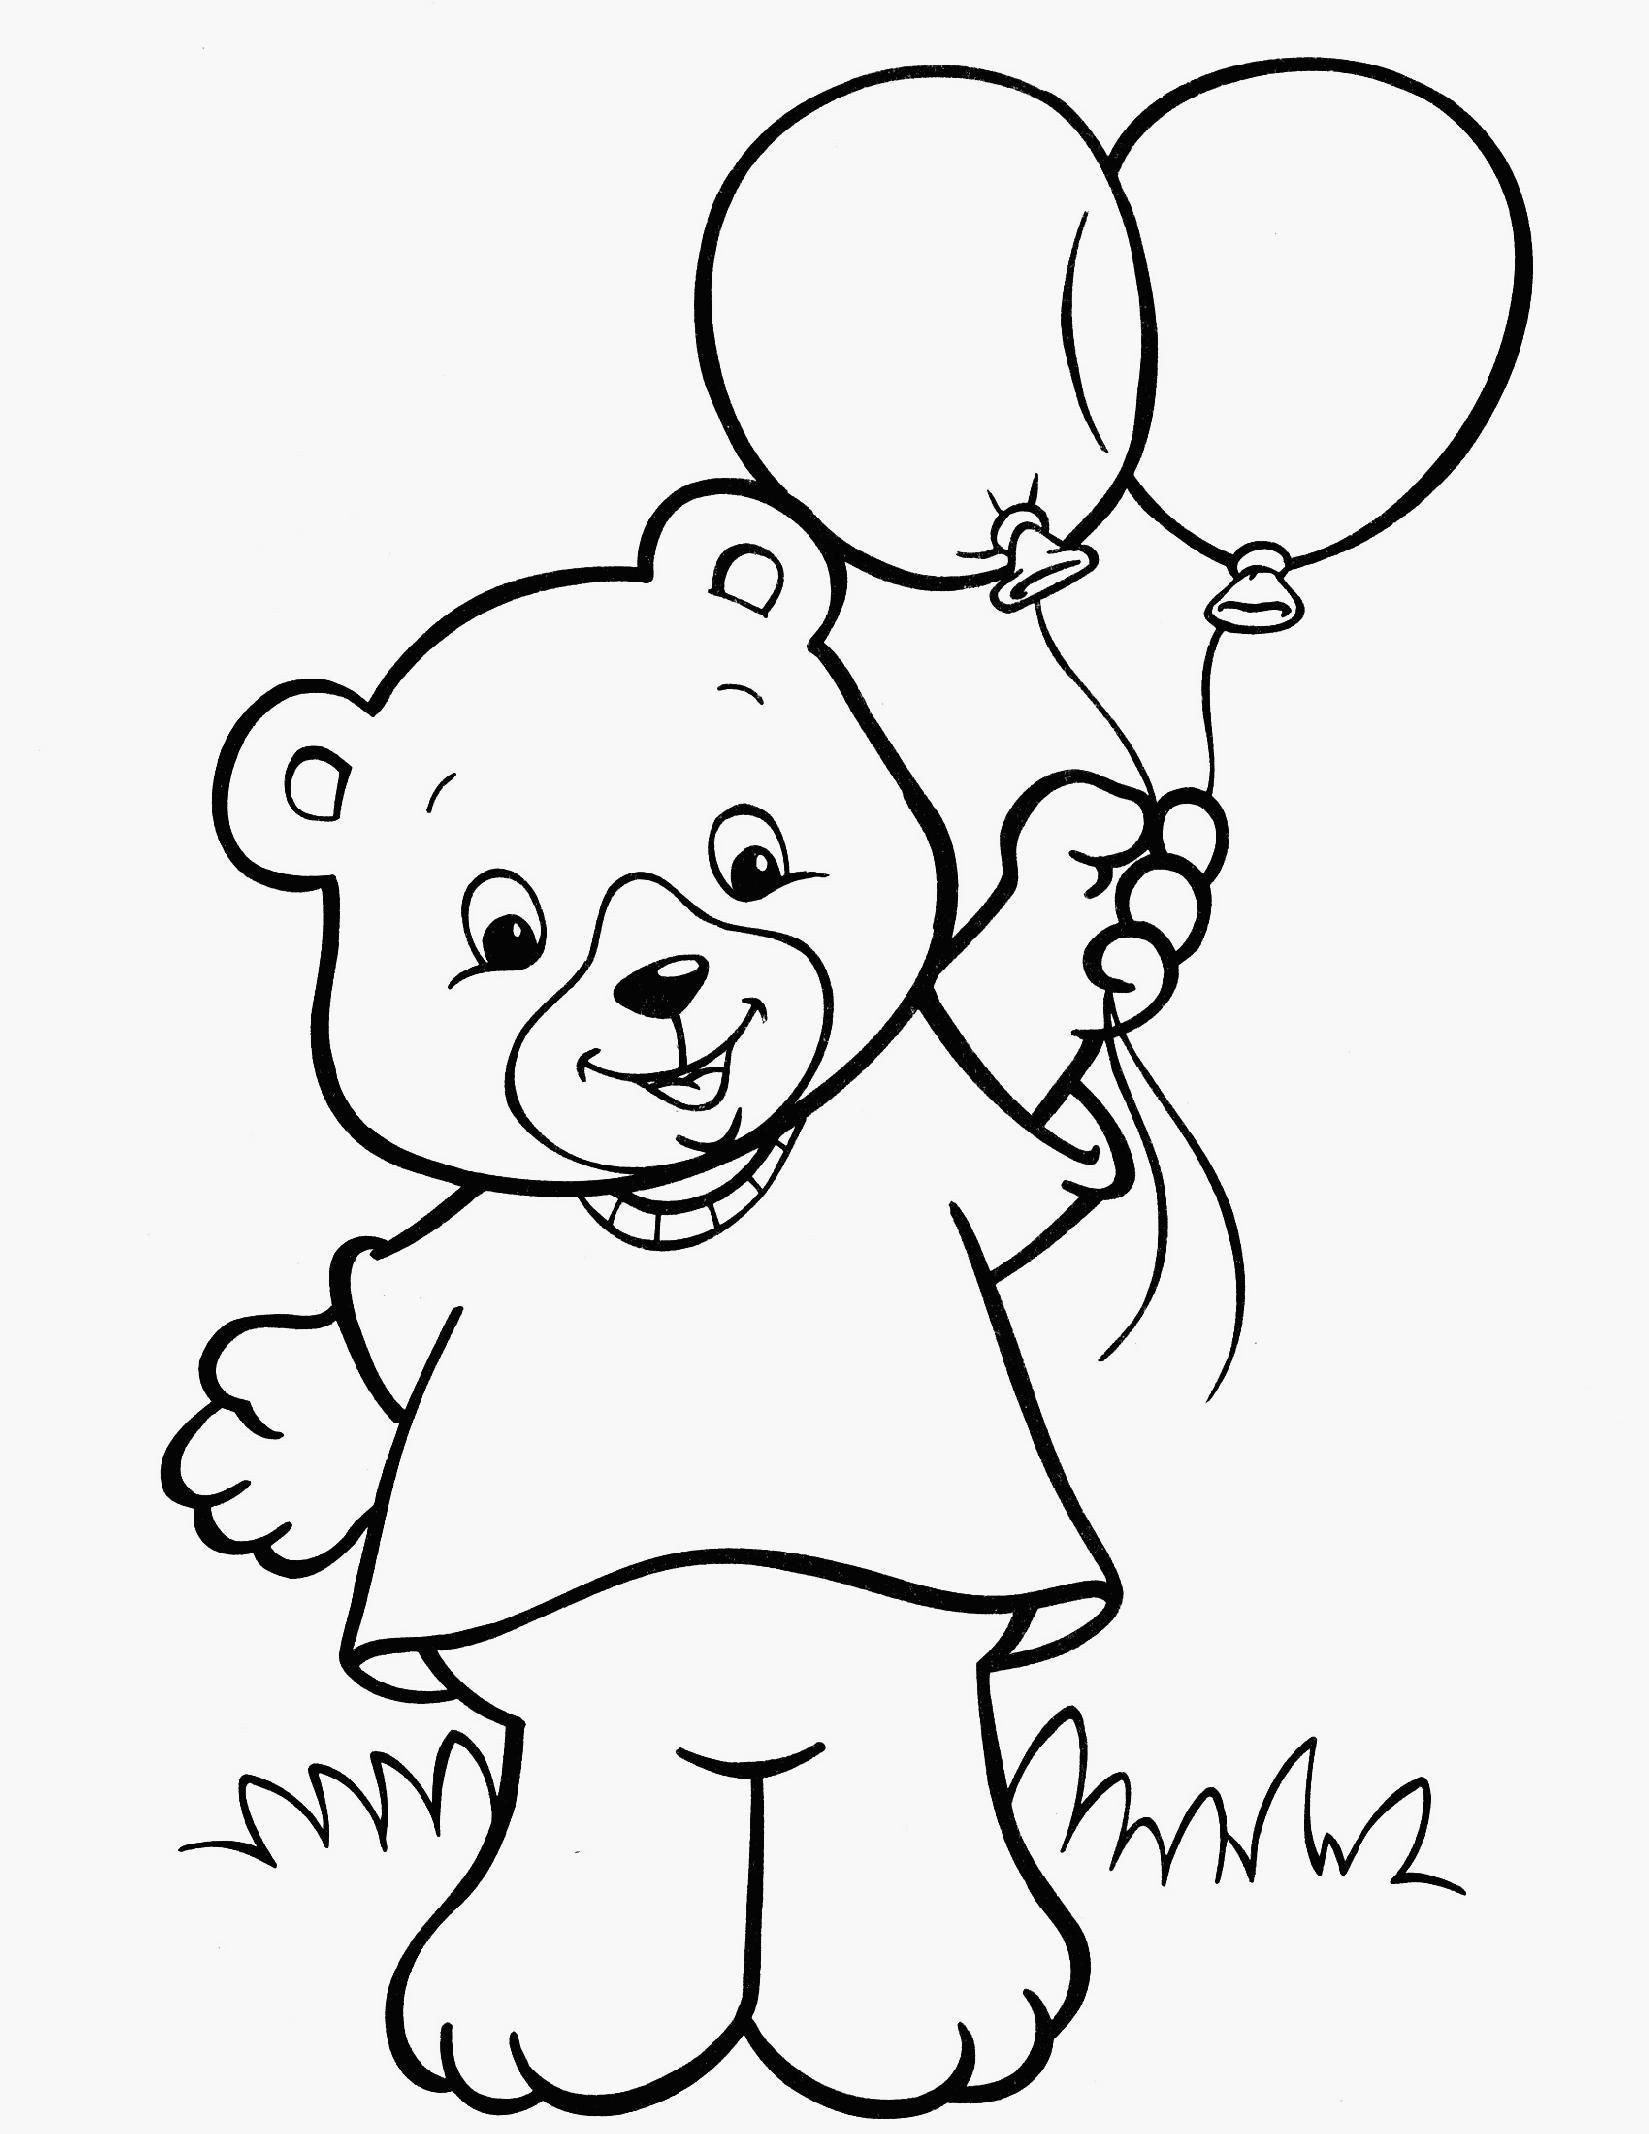 free coloring pages for 4 year olds coloring pages for 3 year olds free download on clipartmag year free olds coloring pages 4 for